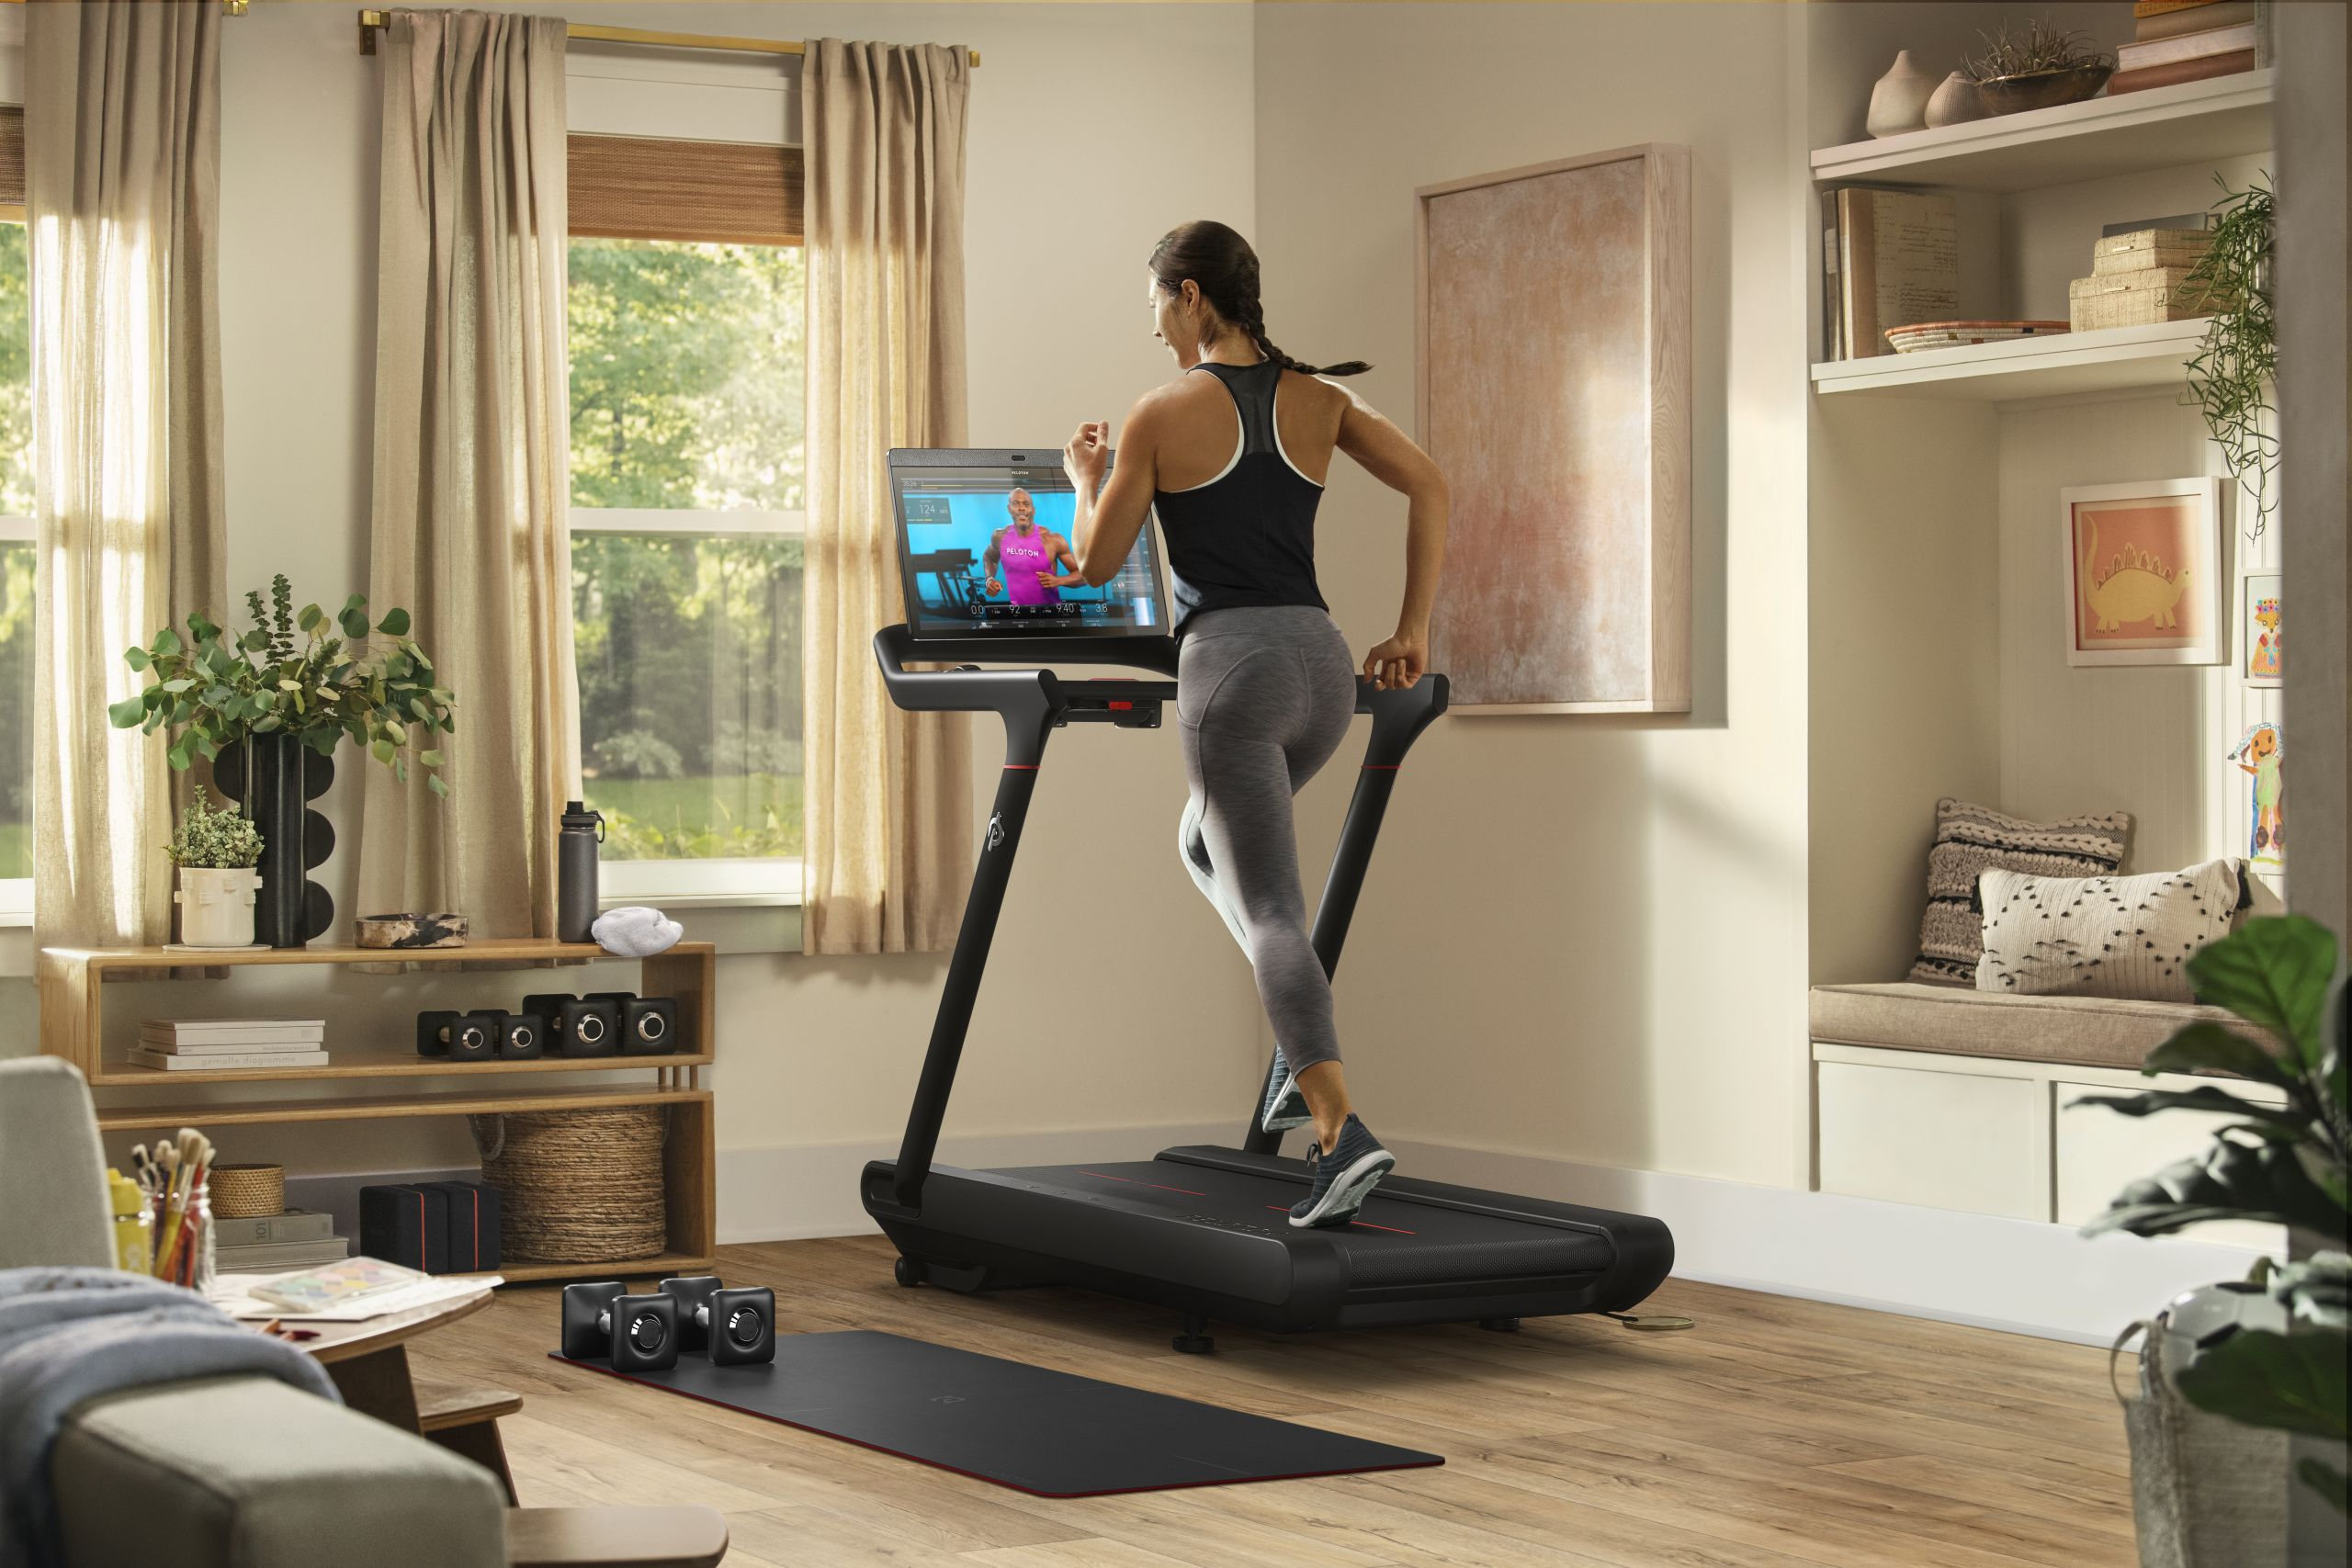 Peloton launches new Bike+ and Tread smart home gym equipment, both at $2,495 – TechCrunch